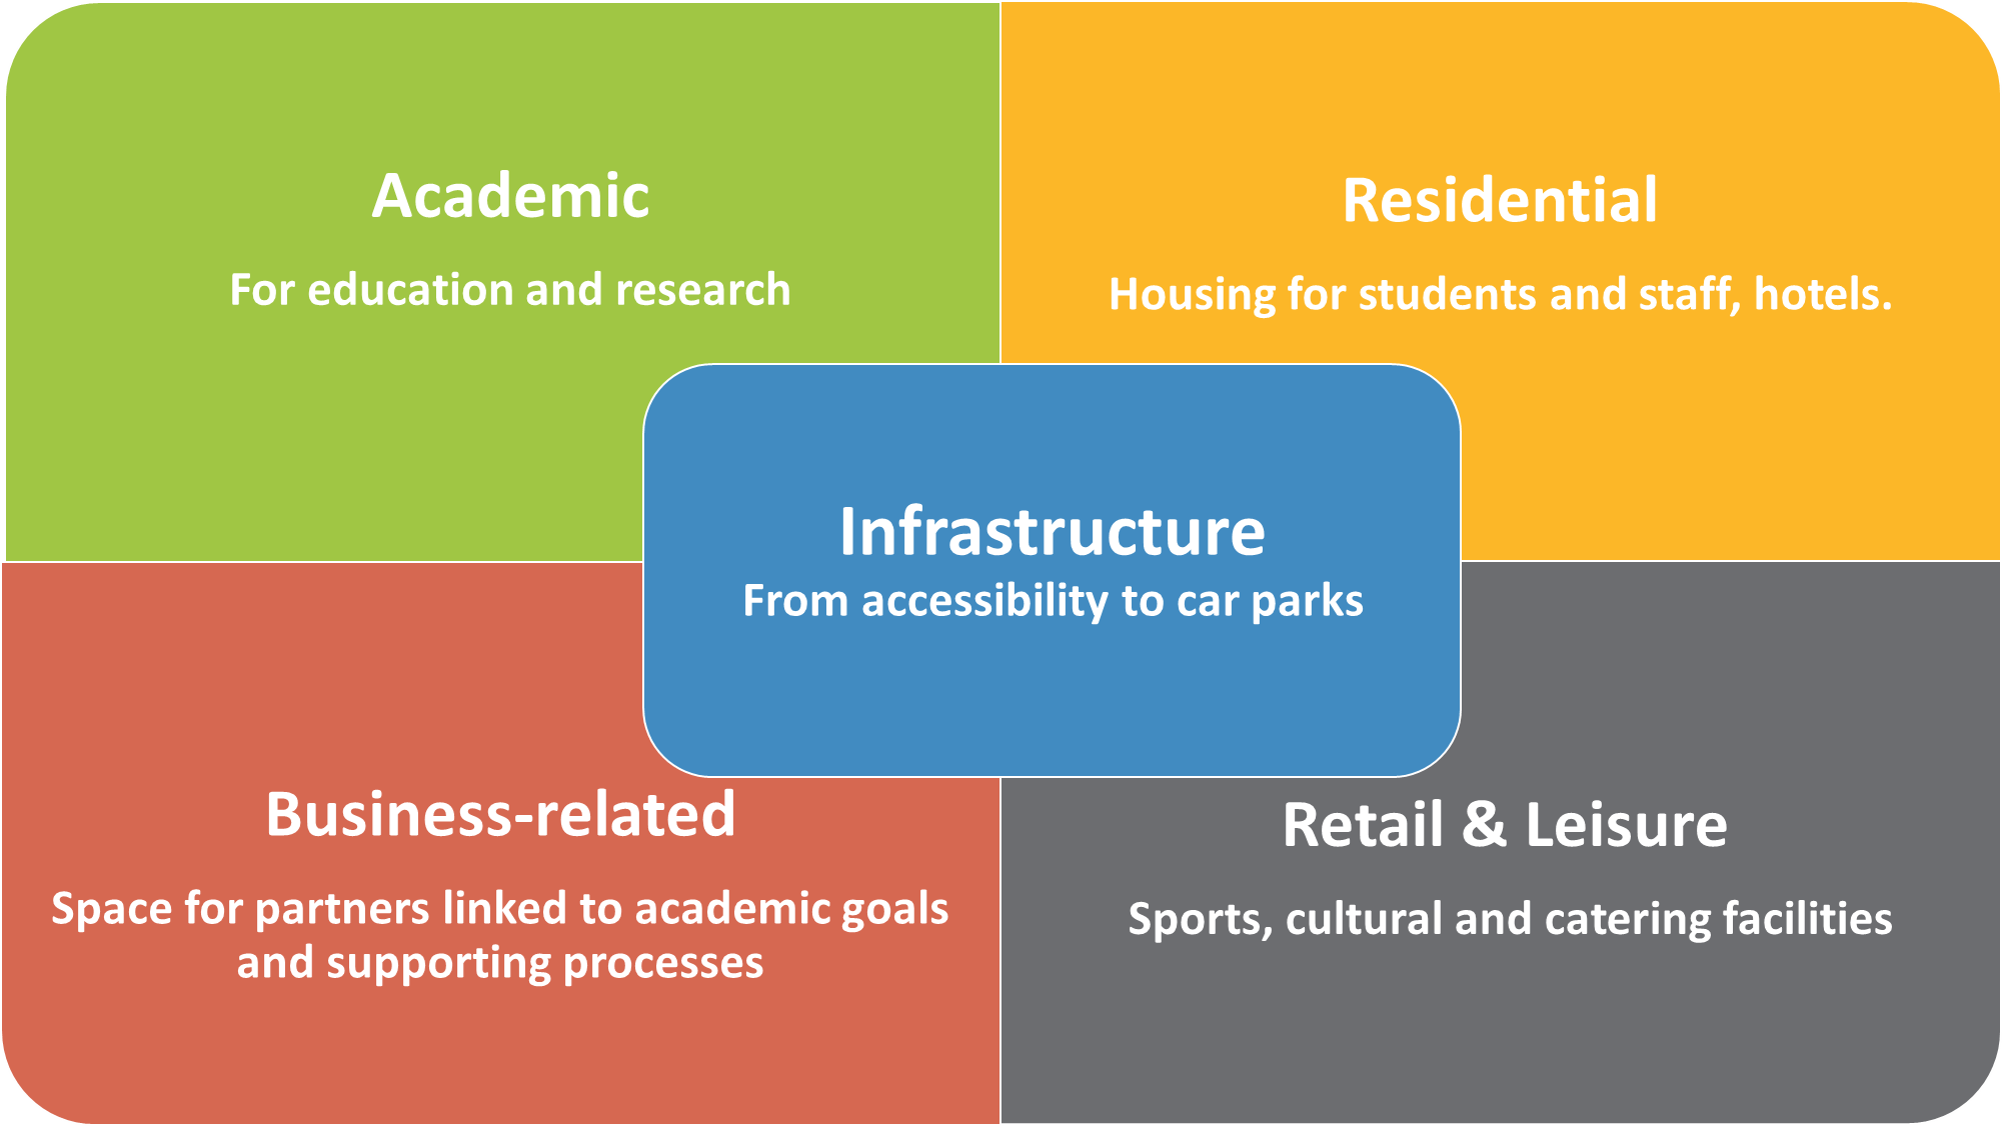 How to improve campus management planning?